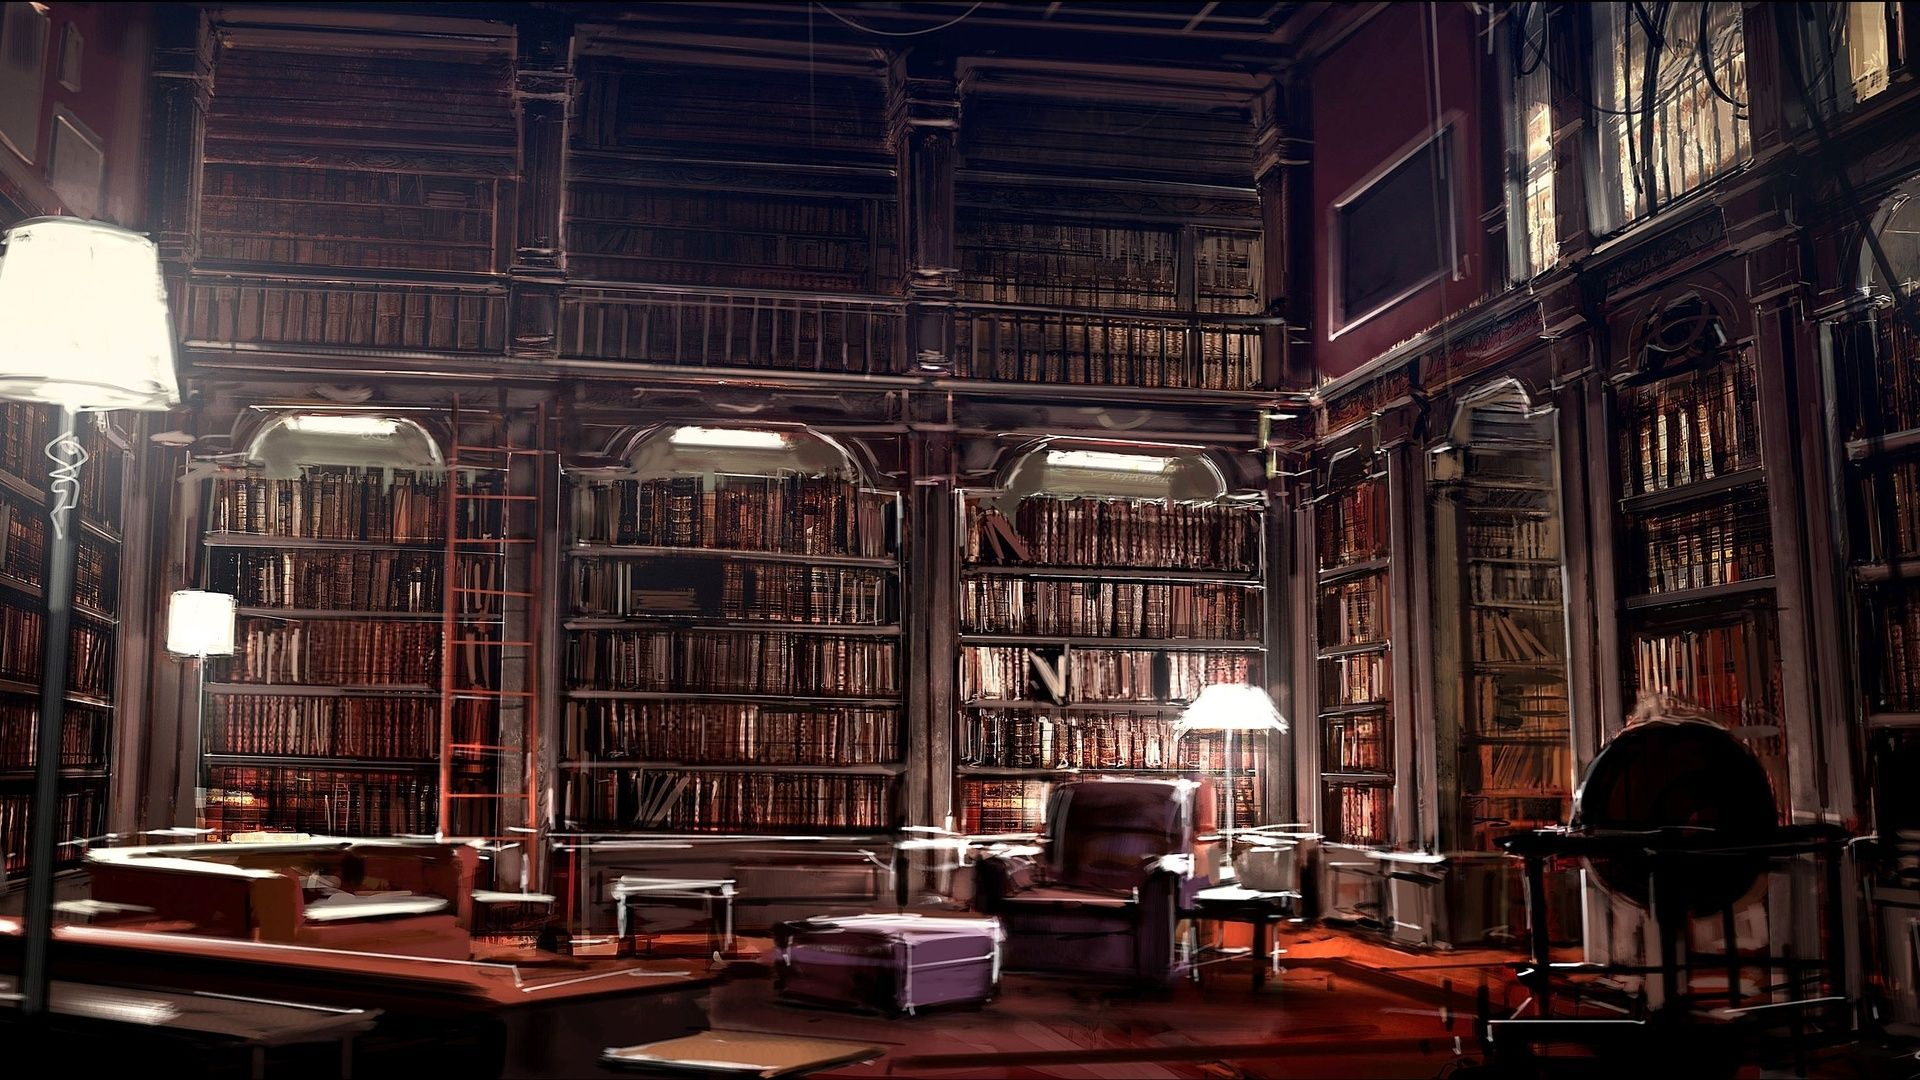 Pleasant 17 Best Images About Home Library Dream On Pinterest Pebble Largest Home Design Picture Inspirations Pitcheantrous